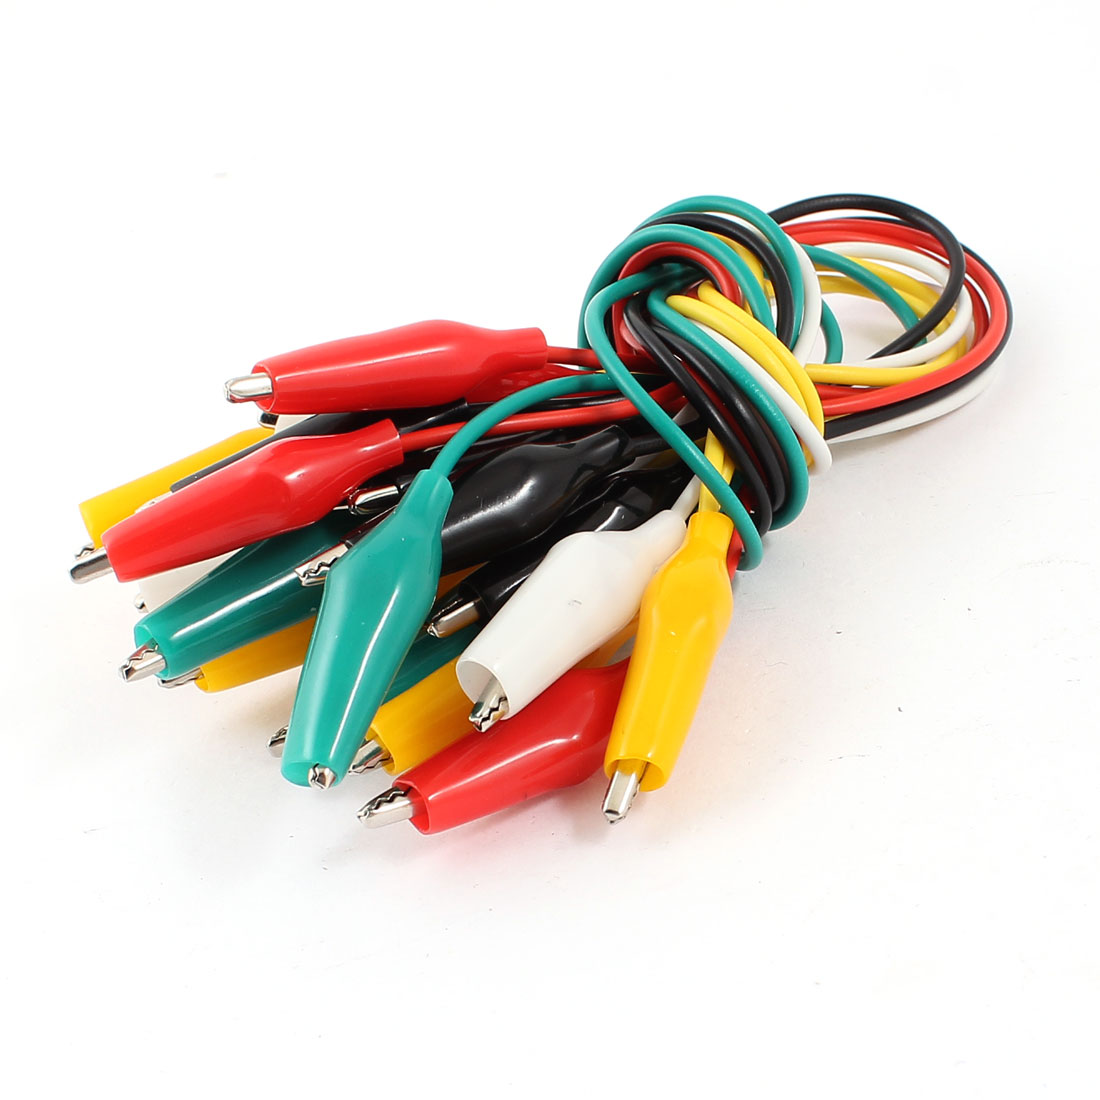 10Pcs Double-ended Test Leads Alligator Crocodile Clip Jumper Wire 30cm